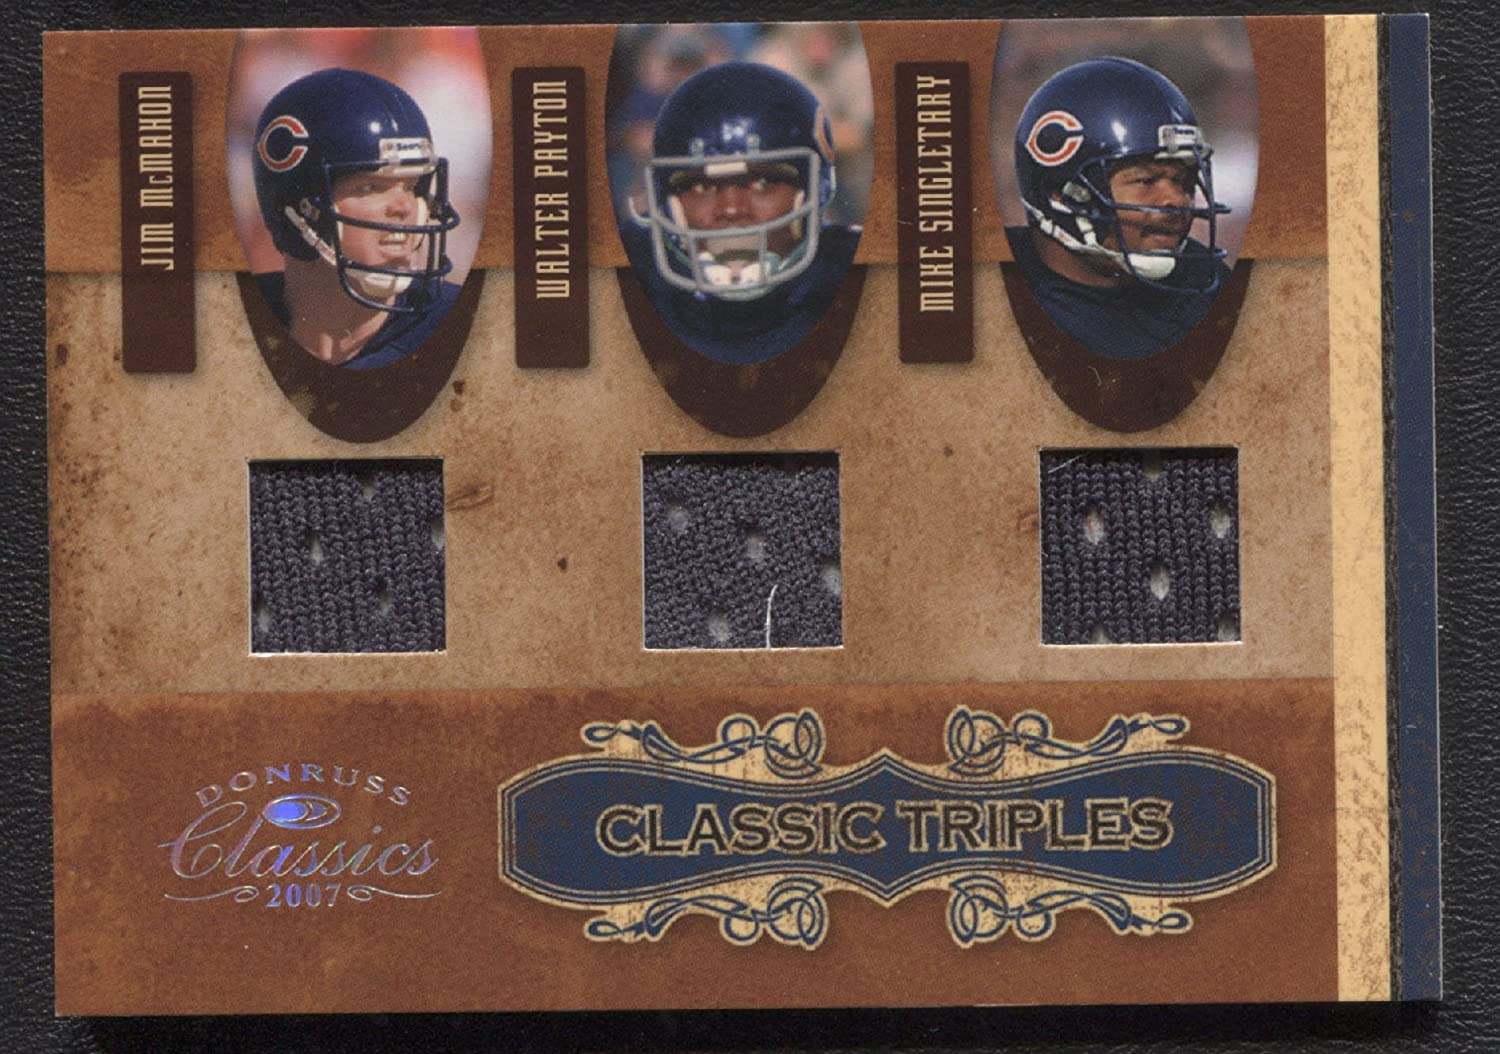 a921a476de6 Chicago Bears 2007 Donruss Classics Classic Triples #CT-4 Jim McMahon  Walter Payton Mike Singletary Game Used Jersey Swatch Card /250 at Amazon's  Sports ...